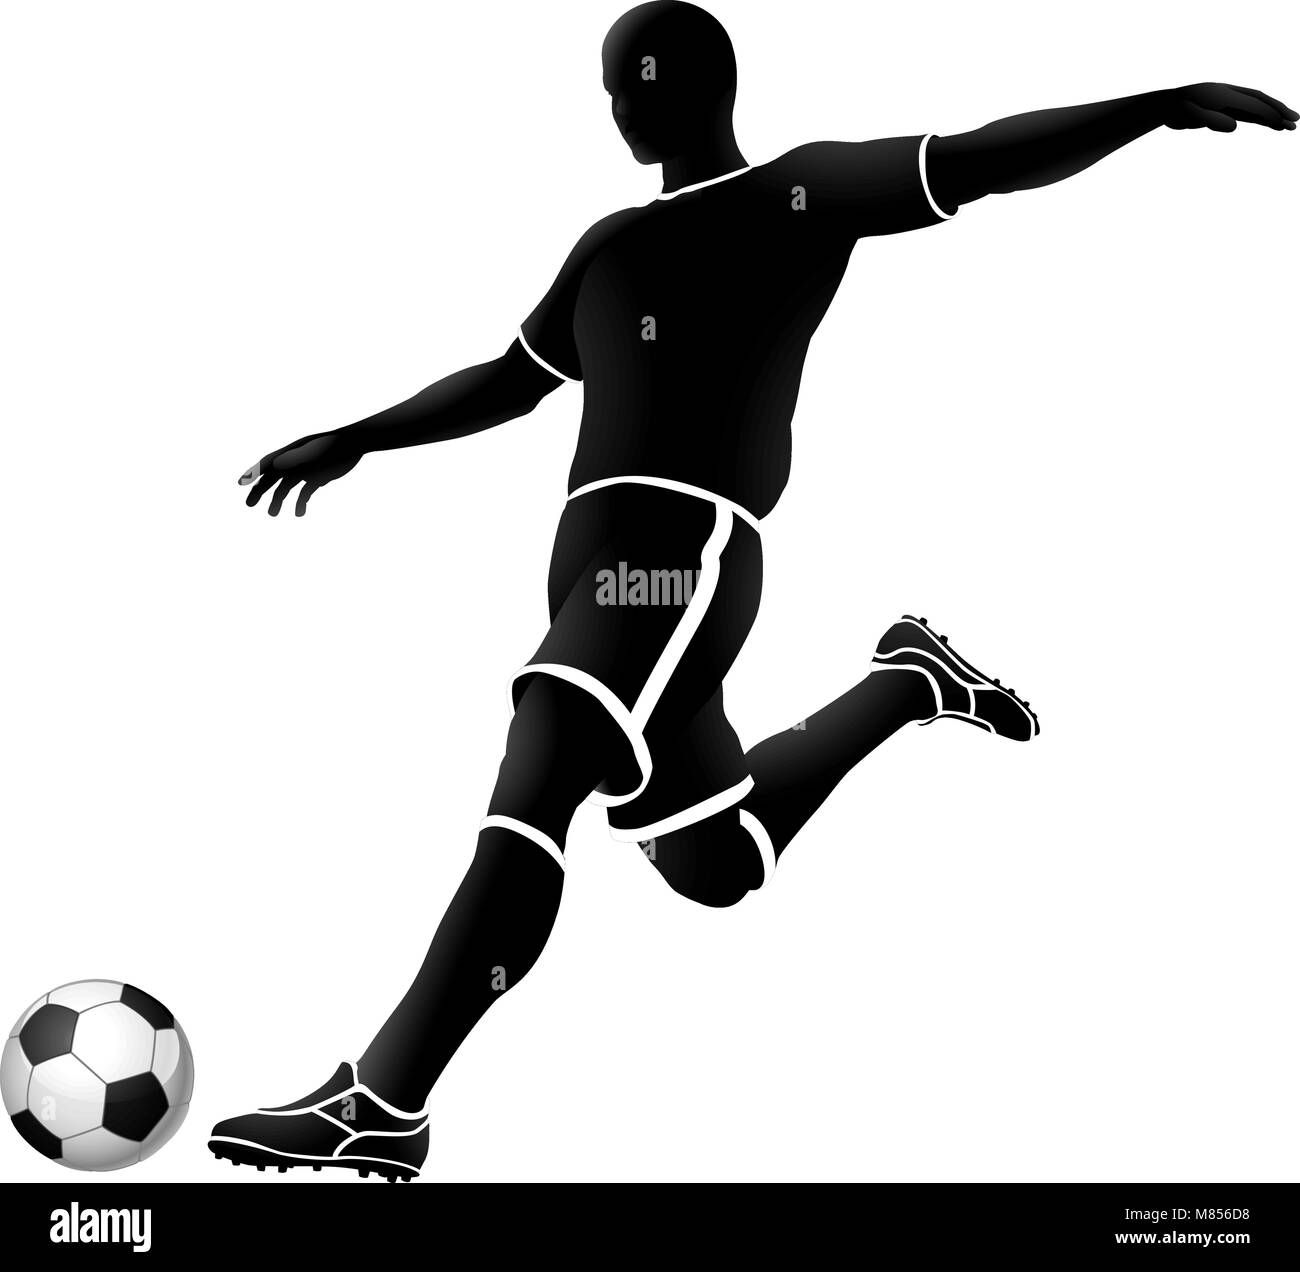 soccer silhouette bw 2018 A3-02 [Converted] - Stock Vector